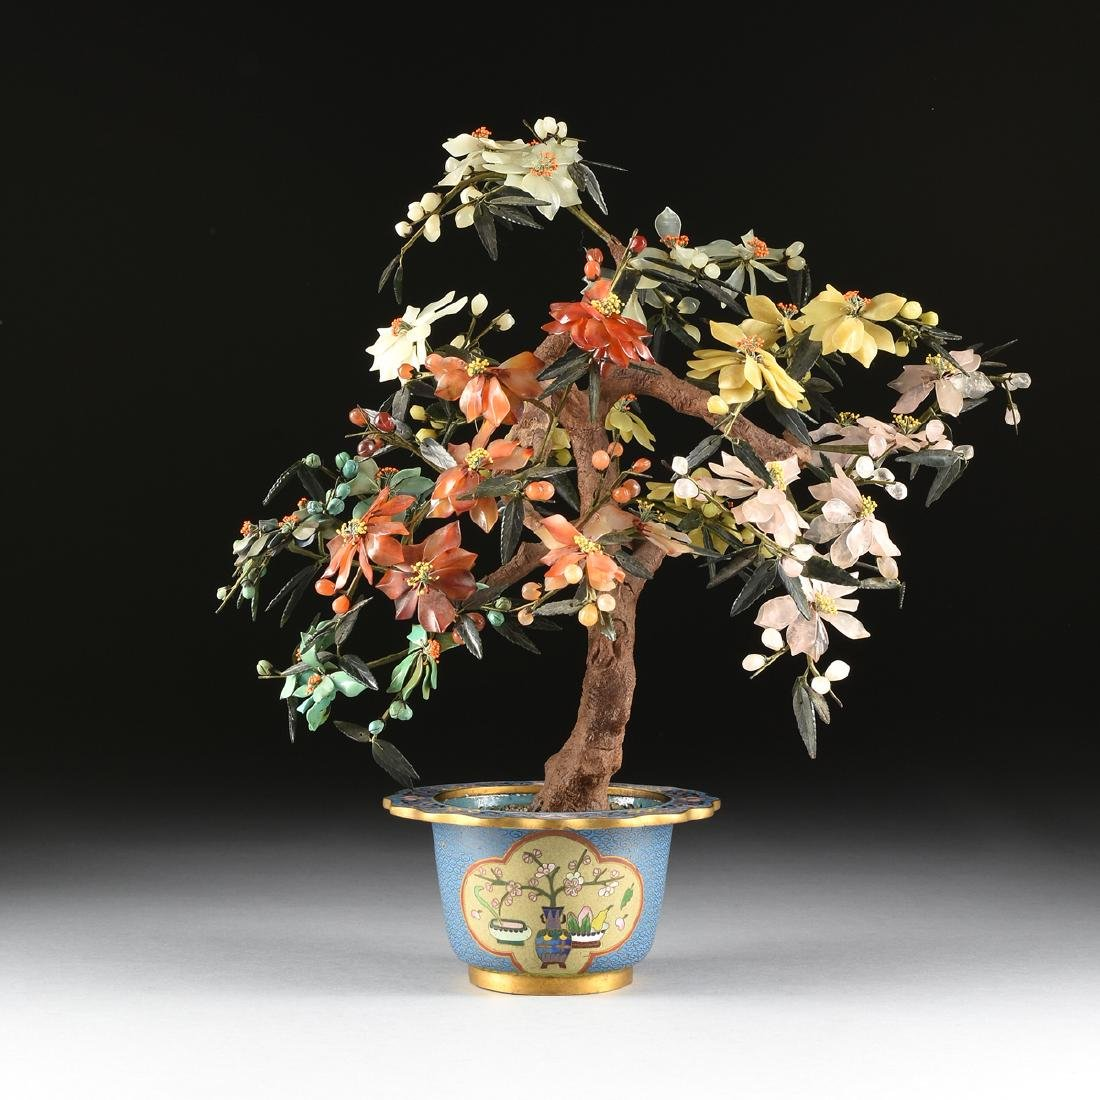 A CHINESE HARD STONE BOTANICAL STUDY IN A CLOISONNE